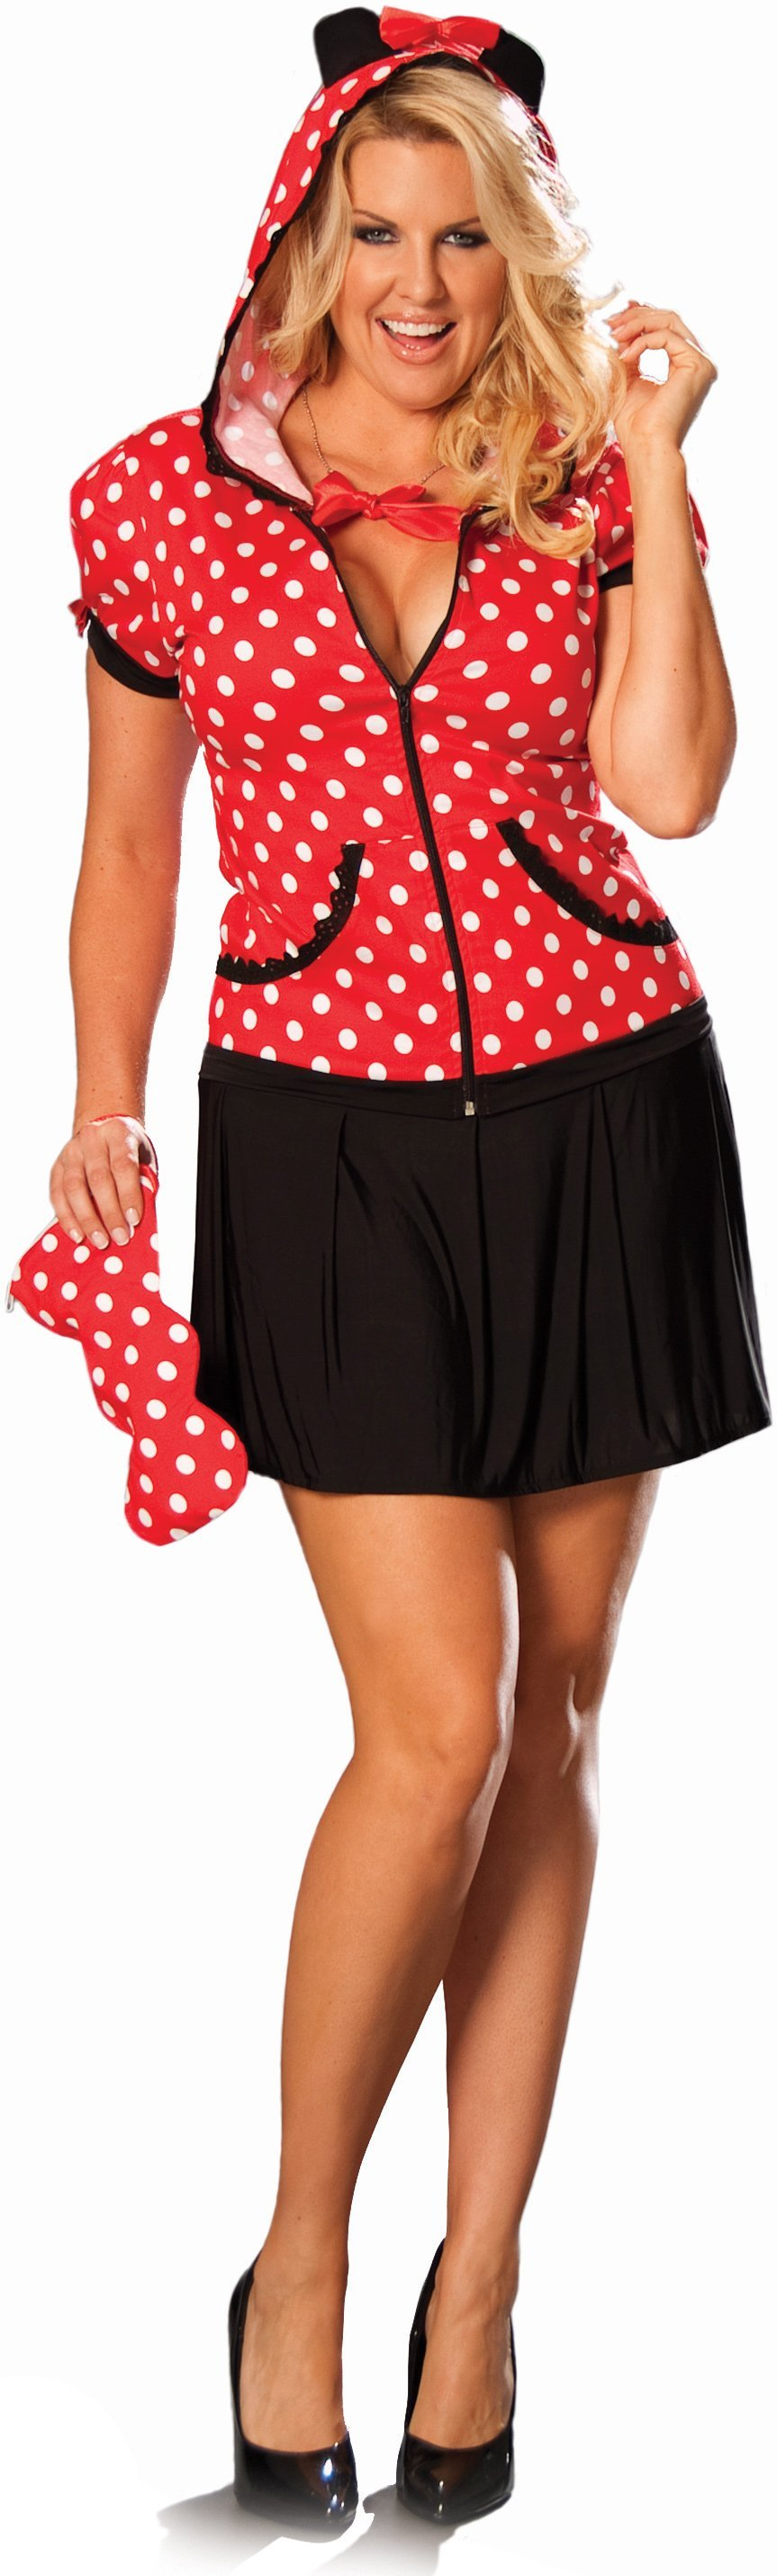 Miss Mouse Plus Adult Costume